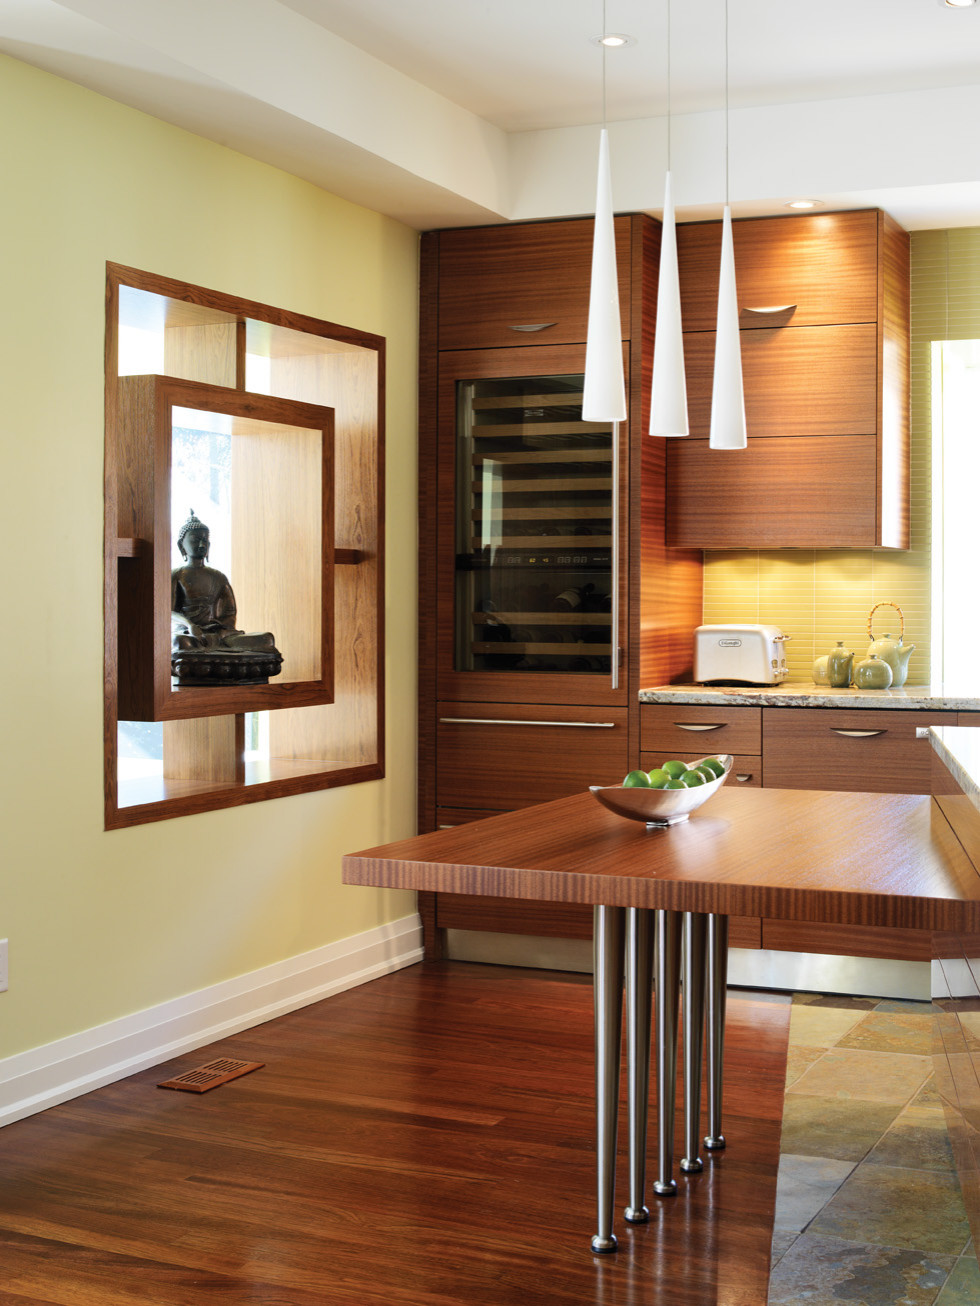 Contemporary Design with High Gloss wood grain